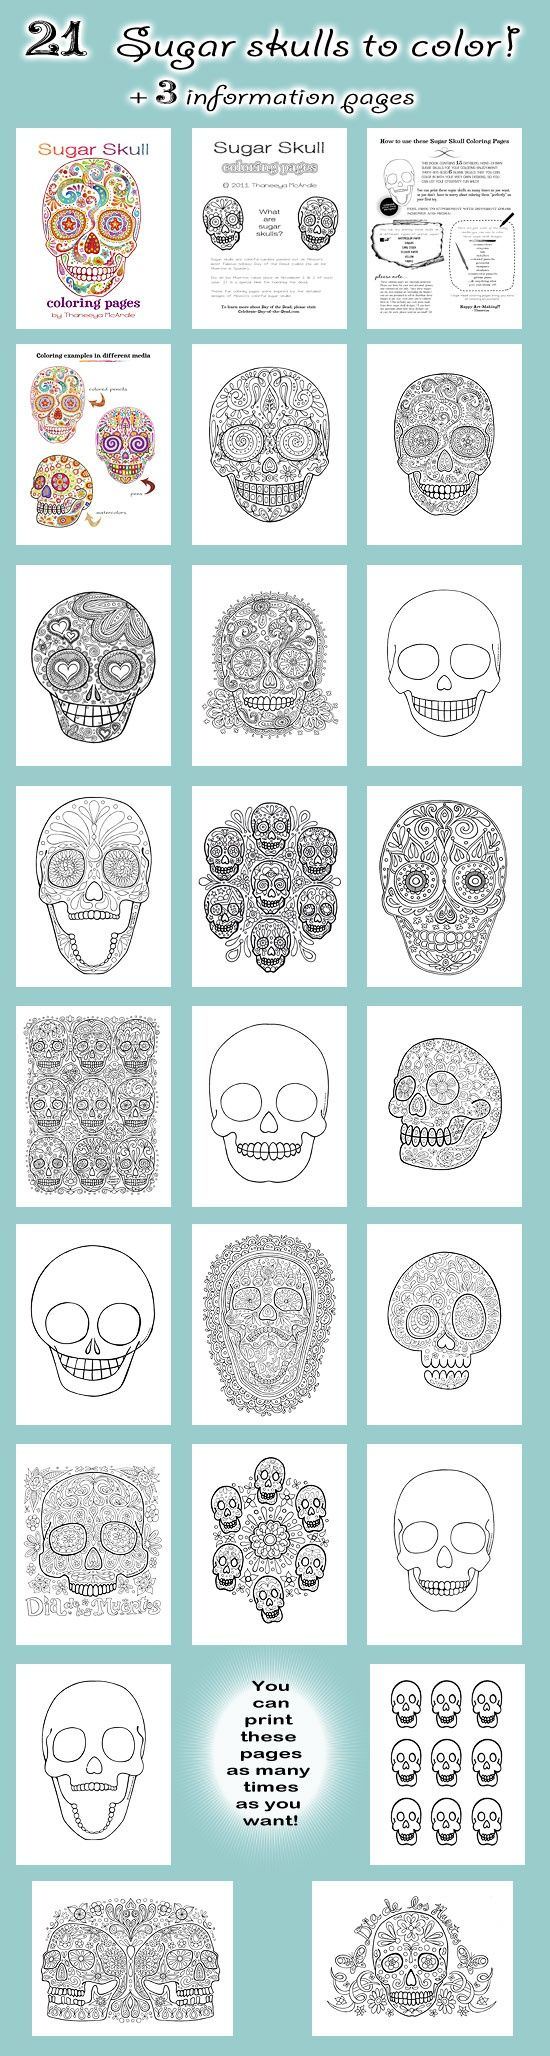 Gonna use these as templates for my new day of the dead paper mache skulls.